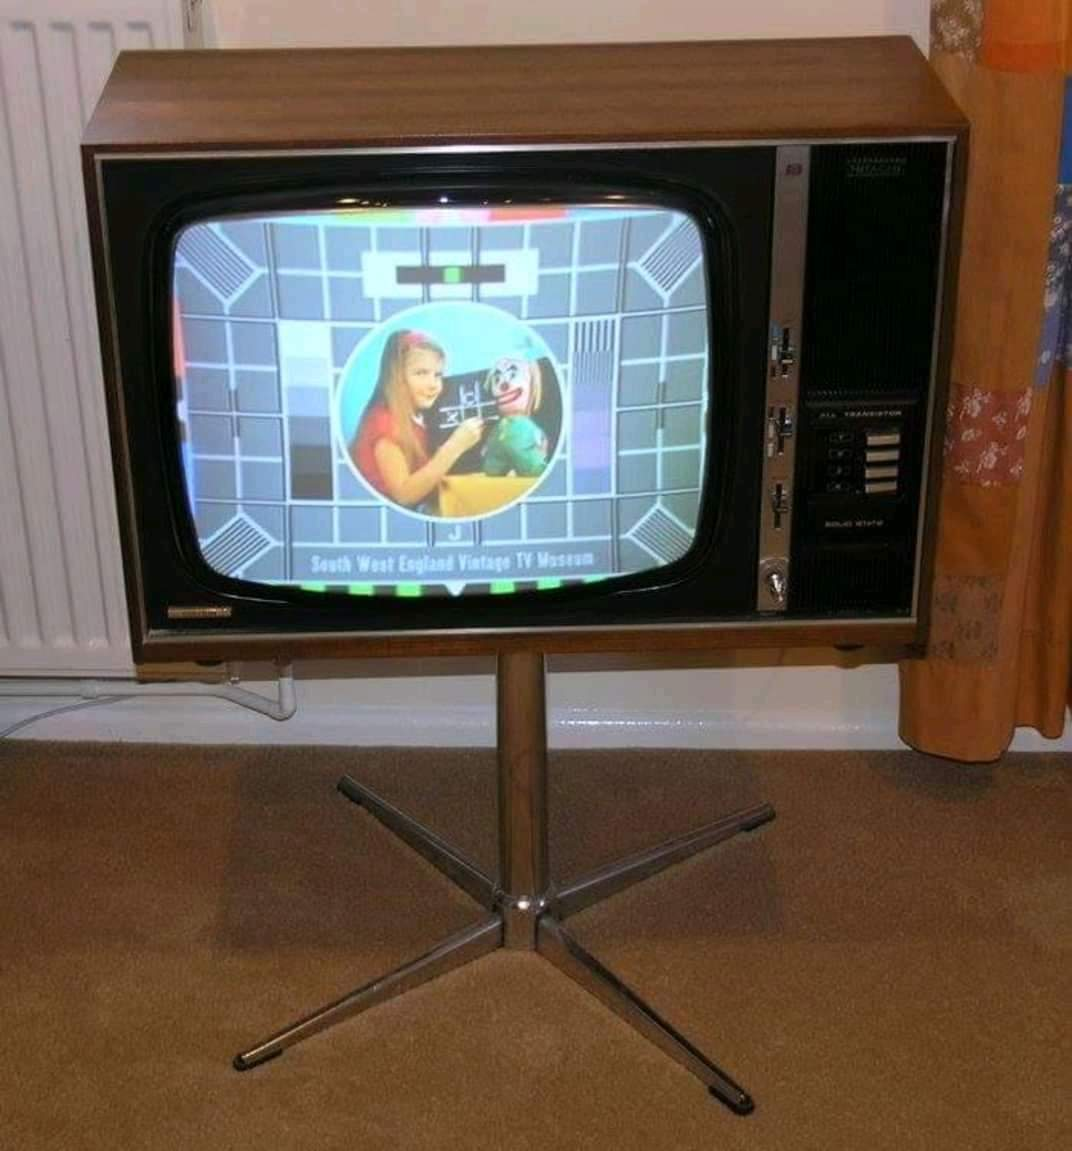 80s Kidz On Twitter Remember Sitting In Your Living Room Cross Legged On The Floor And Watching Willo The Wisp Play School Crackajack On A Tv Like This Https T Co Qixl56ikar